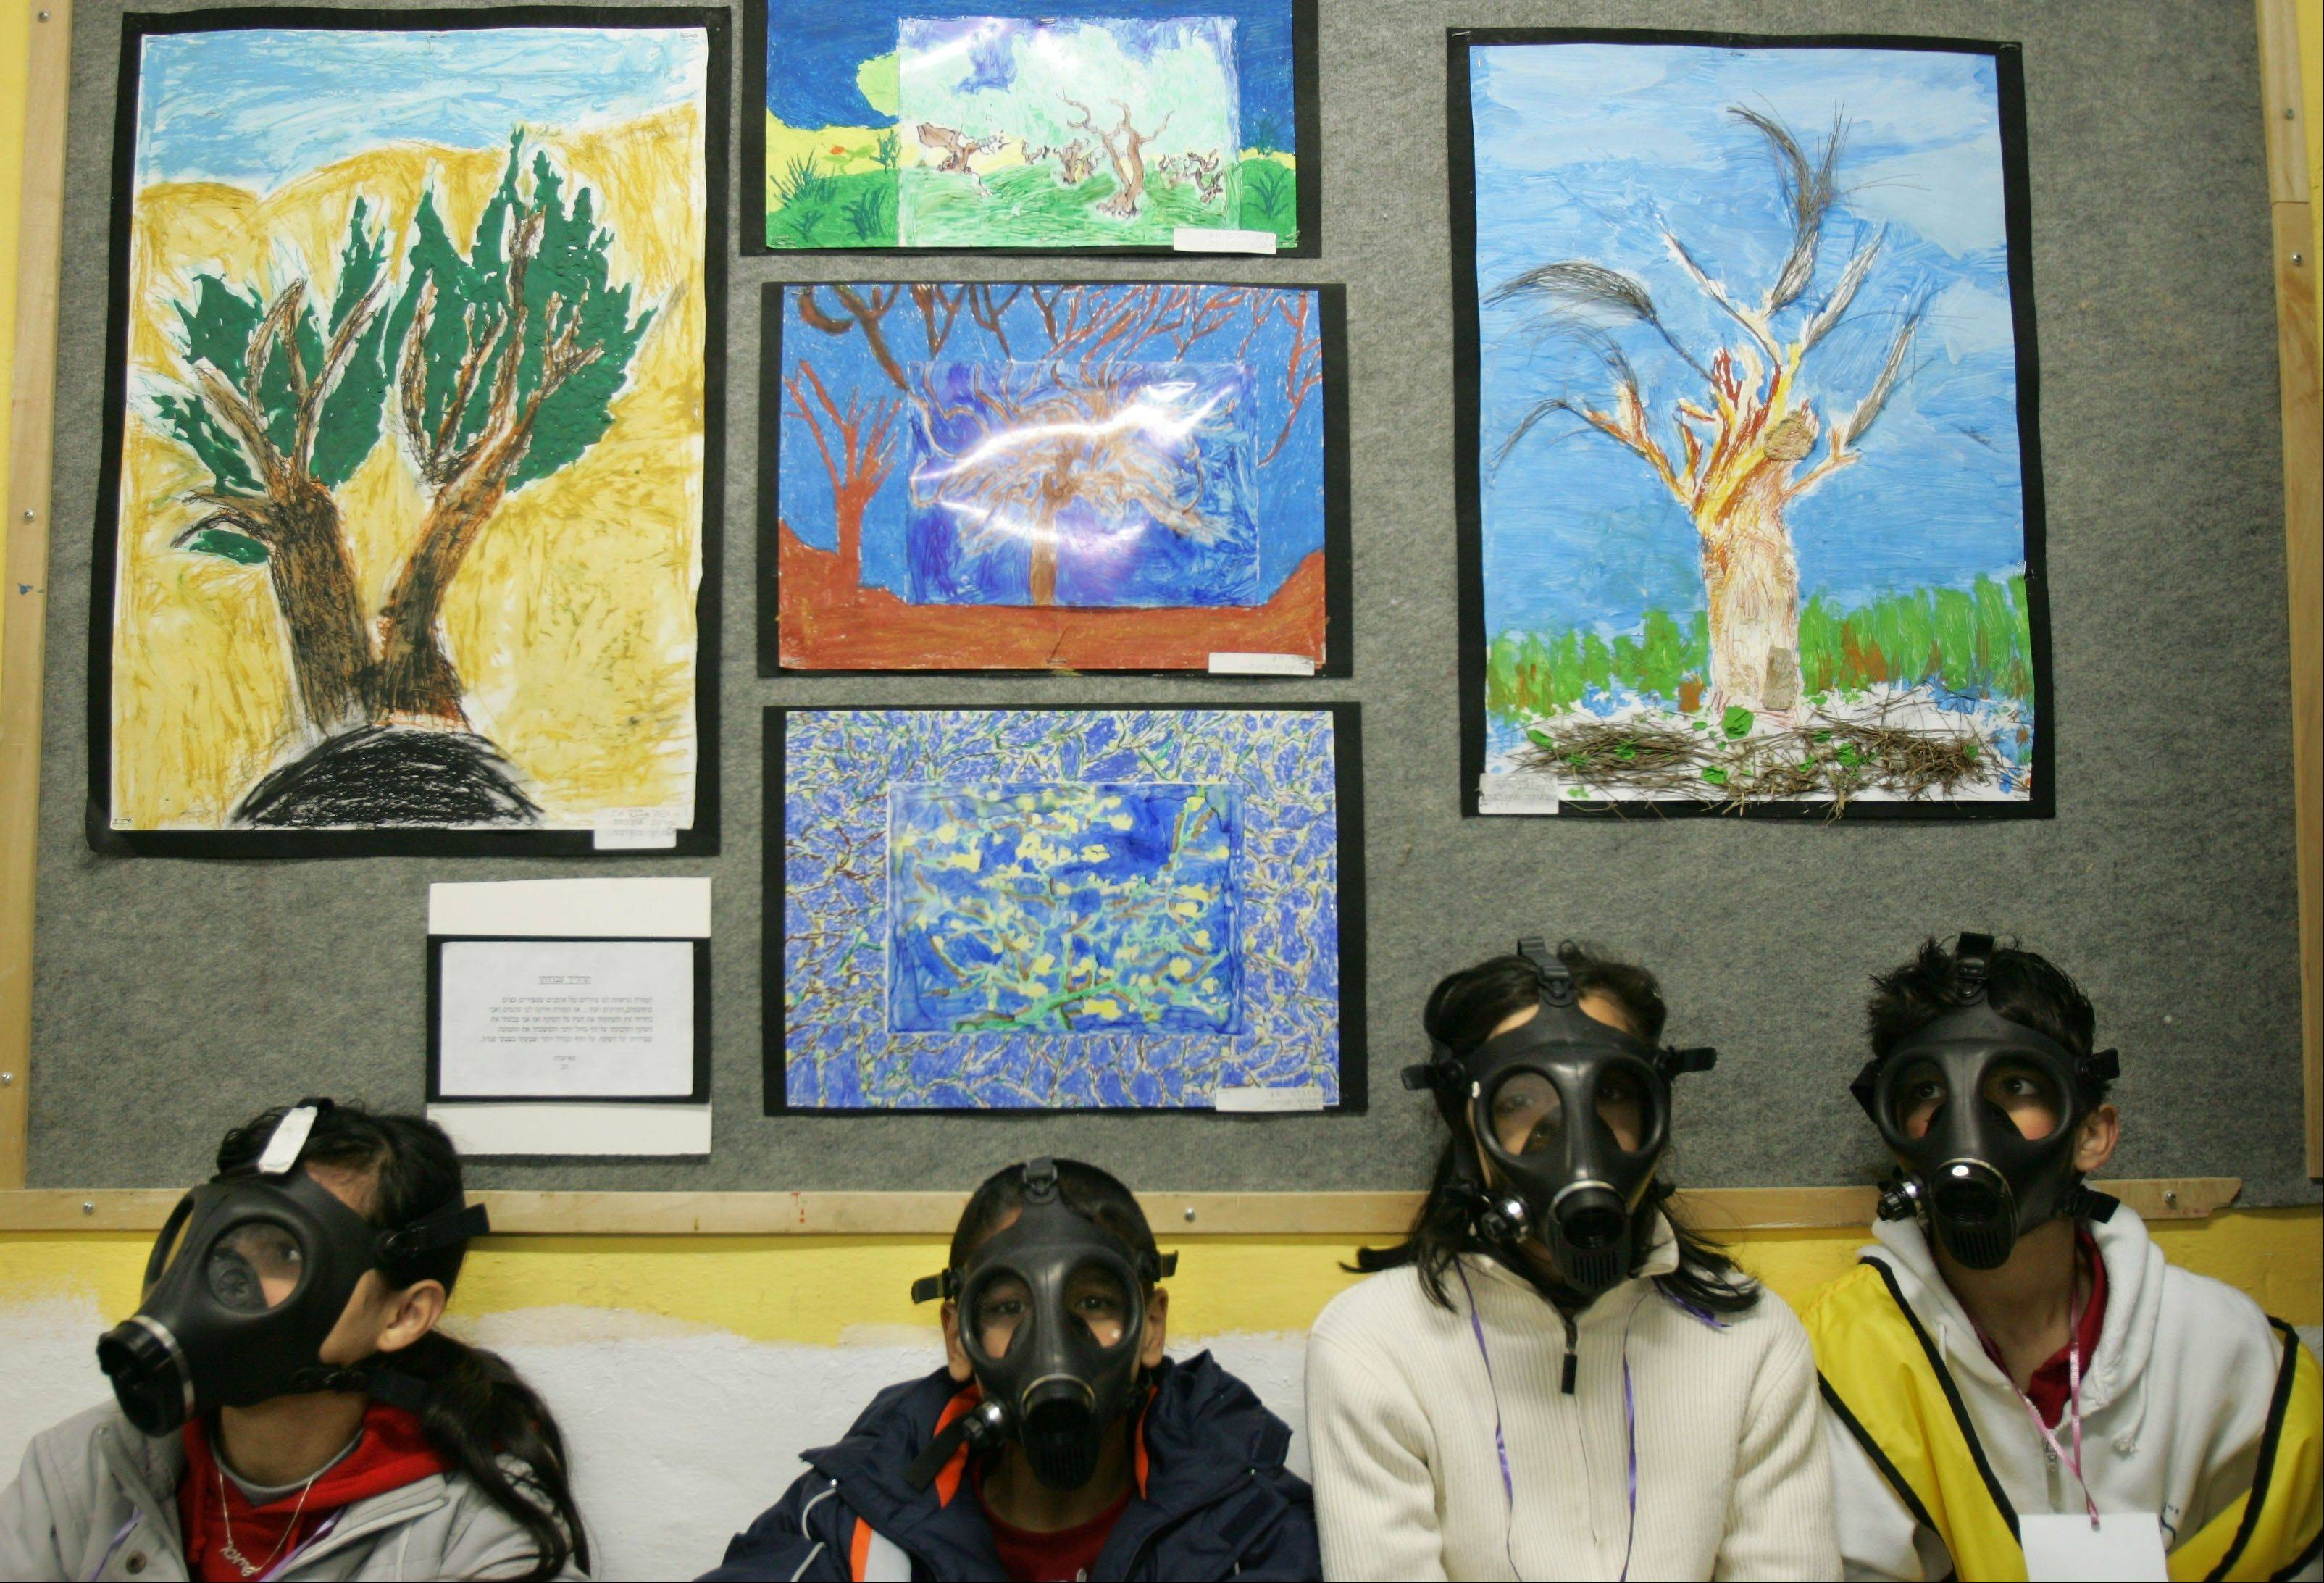 Associated Press/March 15, 2007Israeli school children wear gas masks during a drill organized by the Israeli Home Front Command, simulating a chemical missile attack in a shelter at a school in the central Israeli city of Lod. Israel's ou